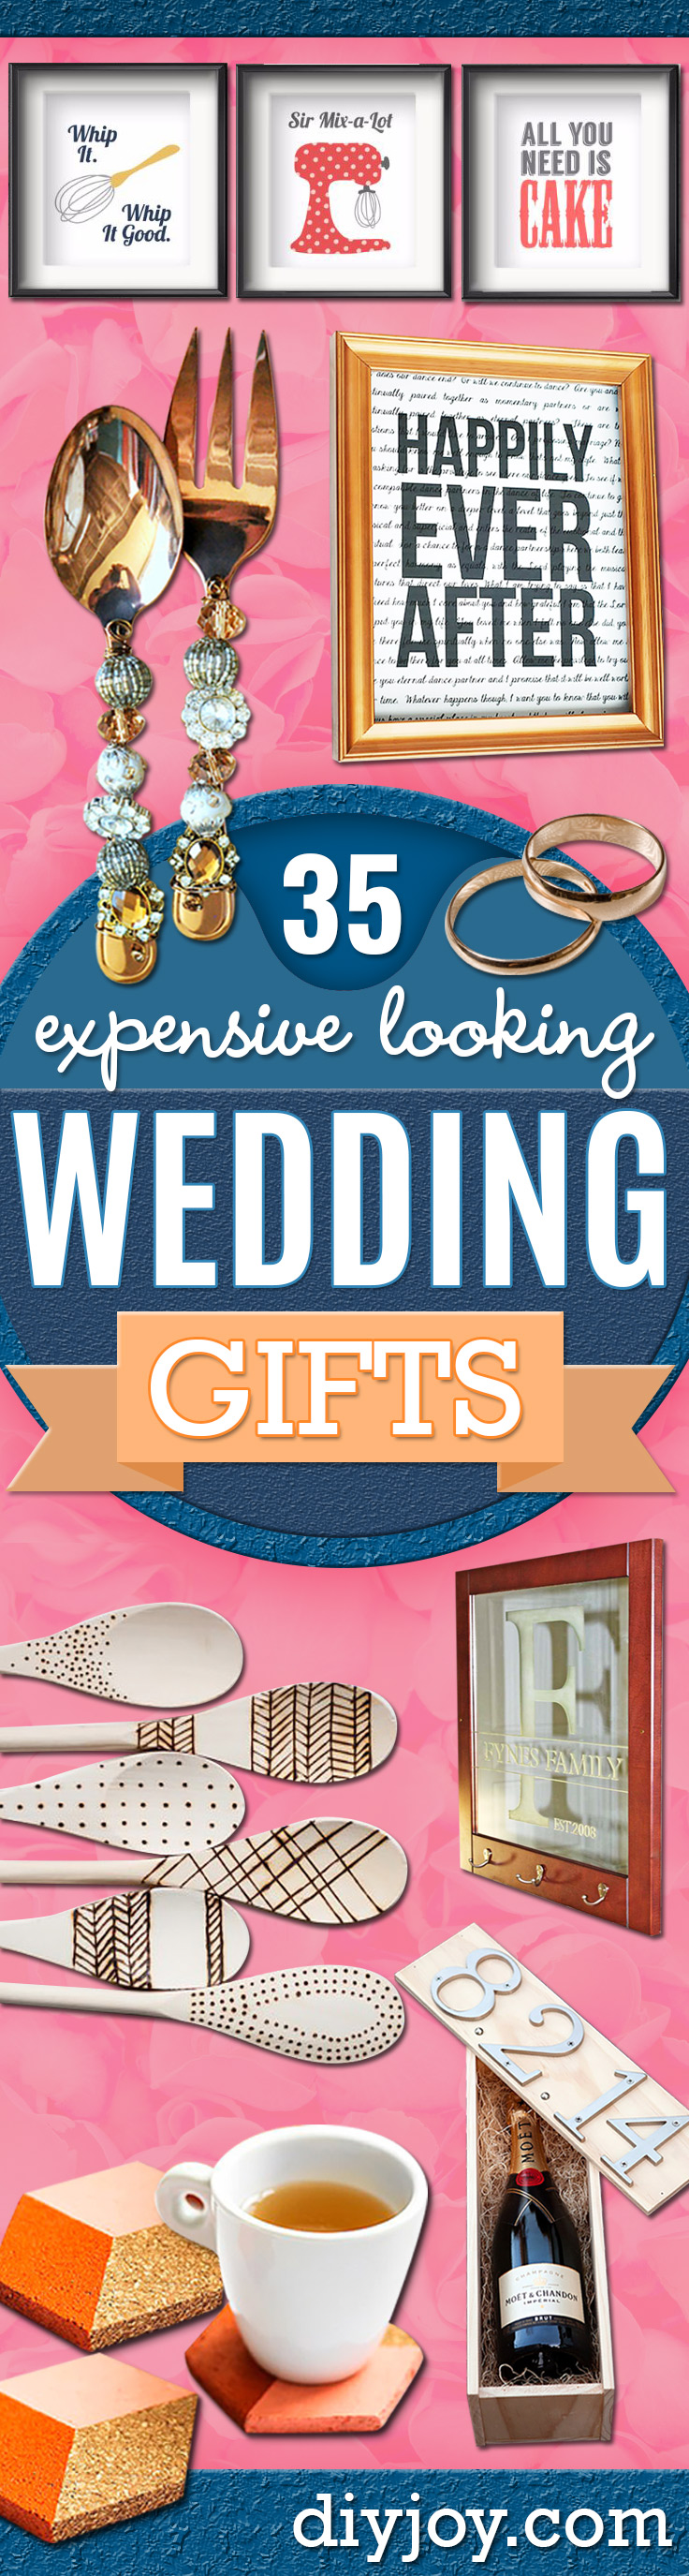 Expensive Looking DIY Wedding Gift Ideas - Cheap Gifts for Weddings and Handmade Gift Ideas for Couples - Easy and Unique Homemade Gift Ideas for Bride and Groom - Cheap Presents You Can Make for the Couple- for the Home, From The Kids, Personalized Ideas for Parents and Bridesmaids | http://diyjoy.com/cheap-diy-wedding-gifts